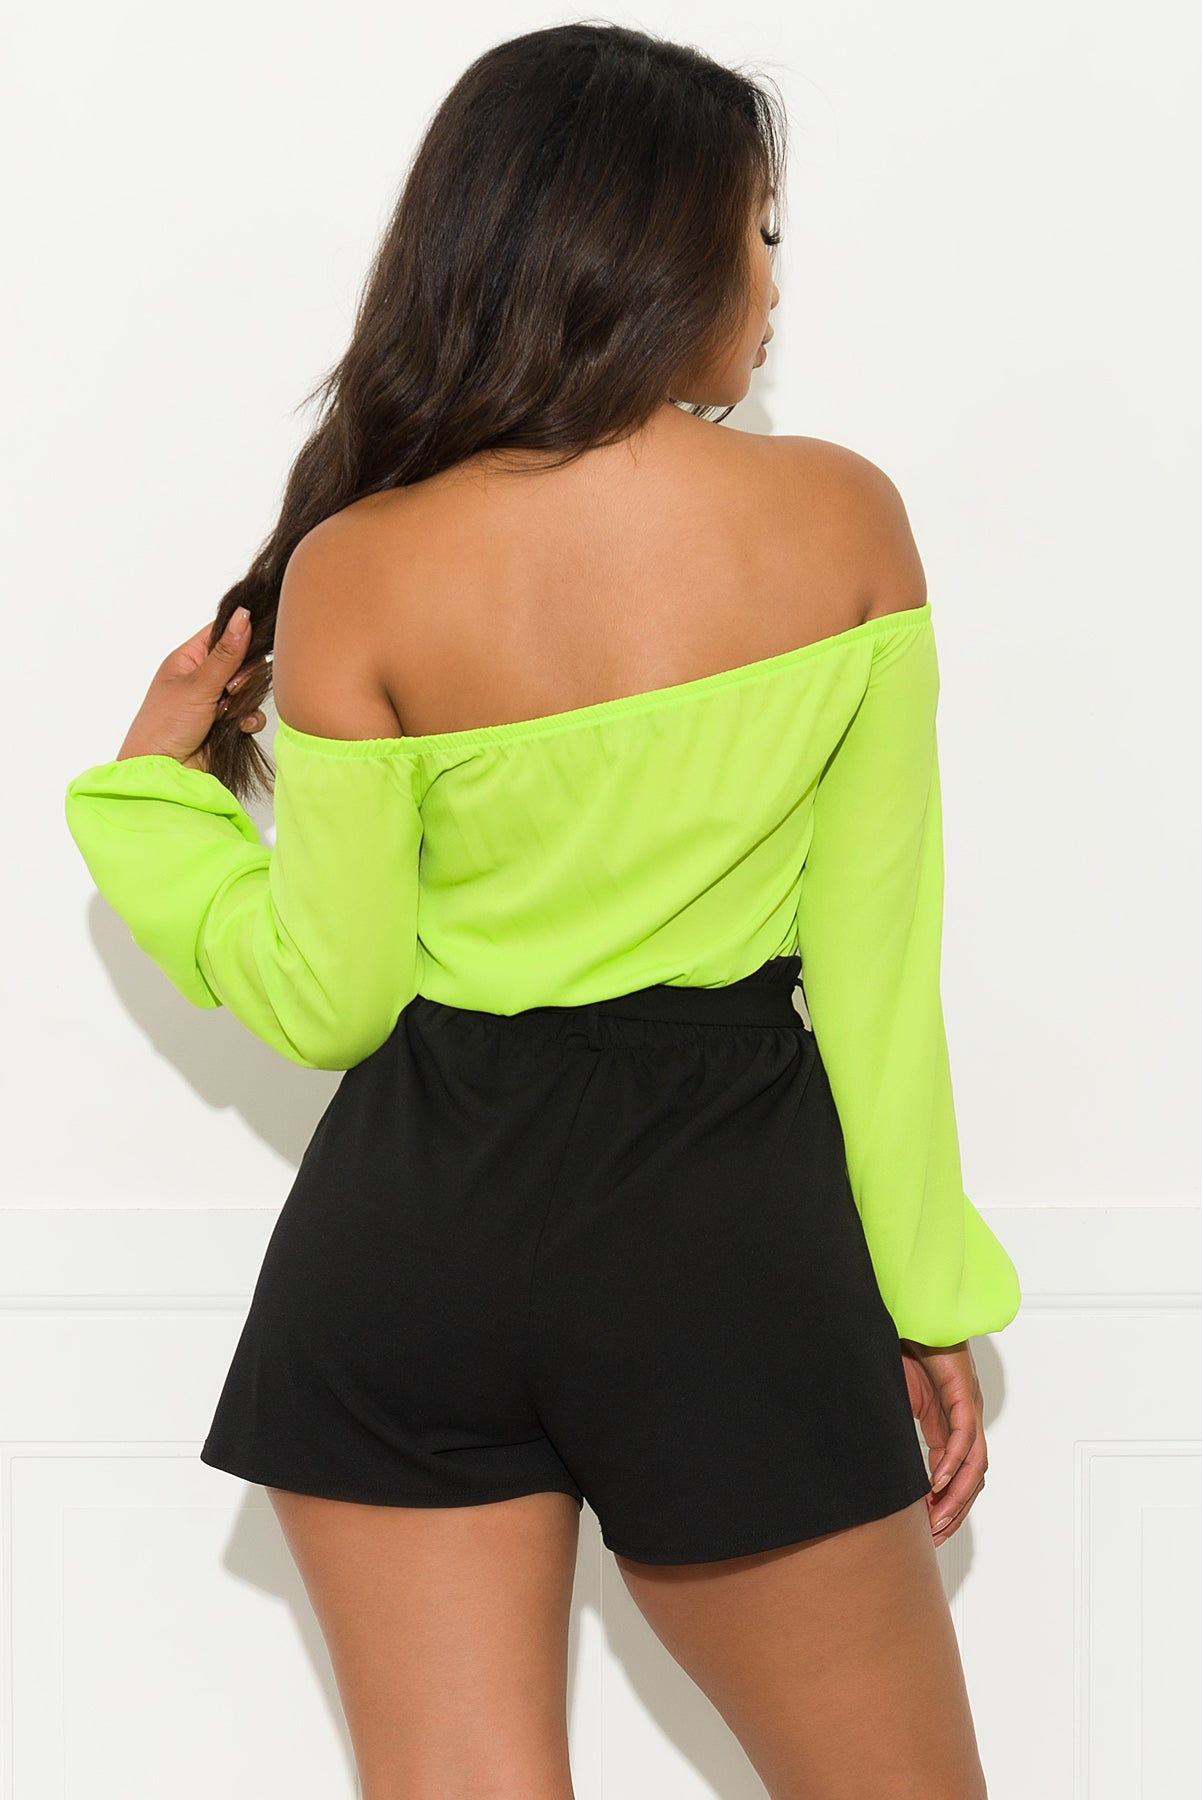 Sunshine State Of Mind Romper - Neon Green